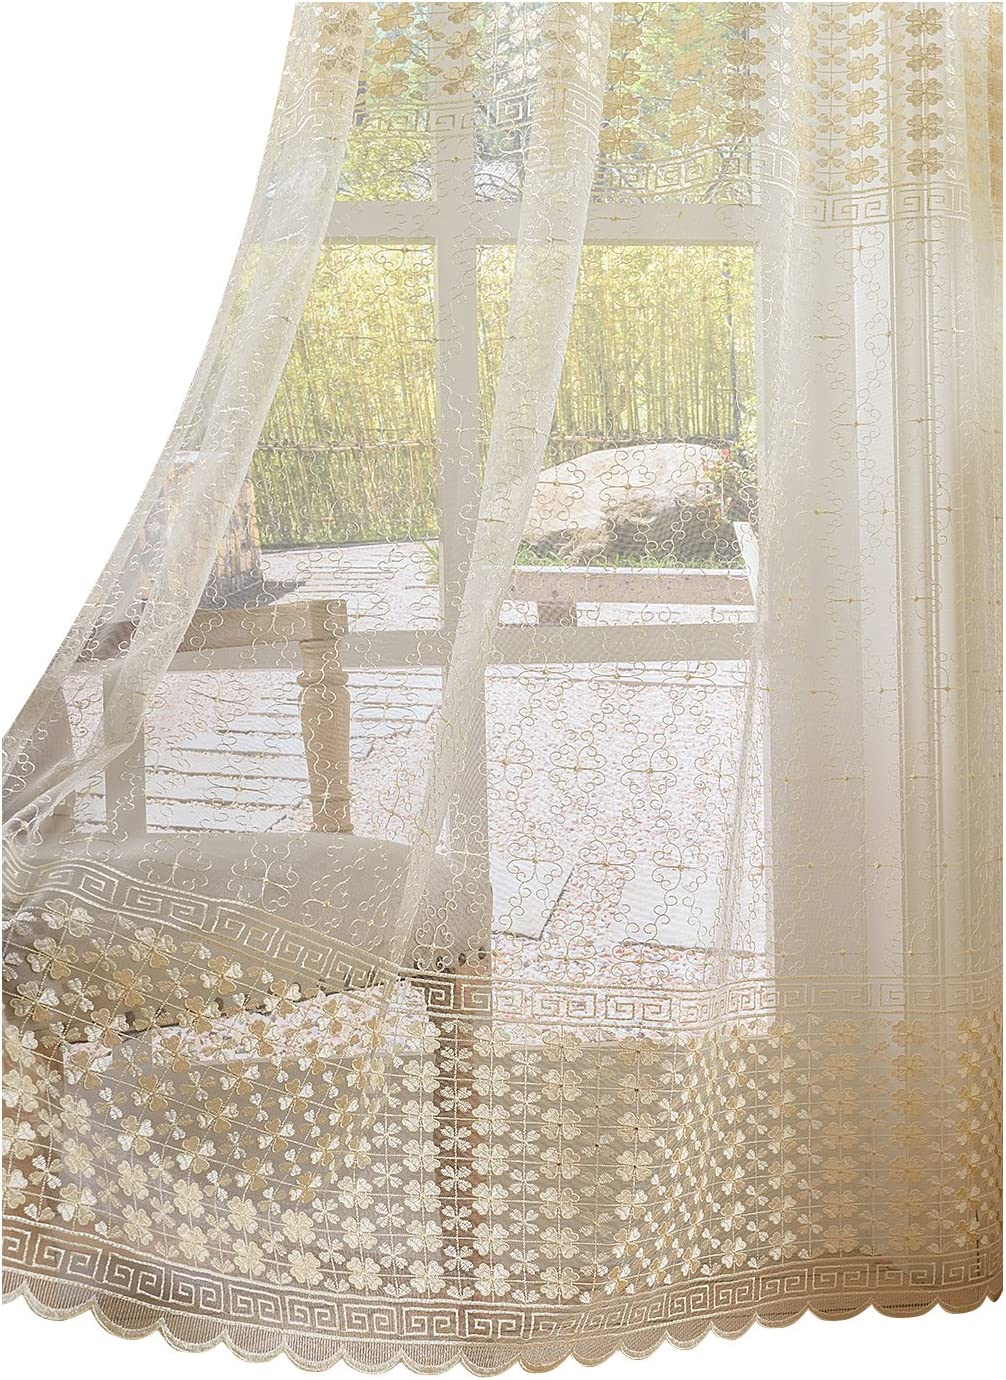 BW0057 Sheer Curtains 2021 Max 85% OFF Clover Elegance Window Treatme Embroidered